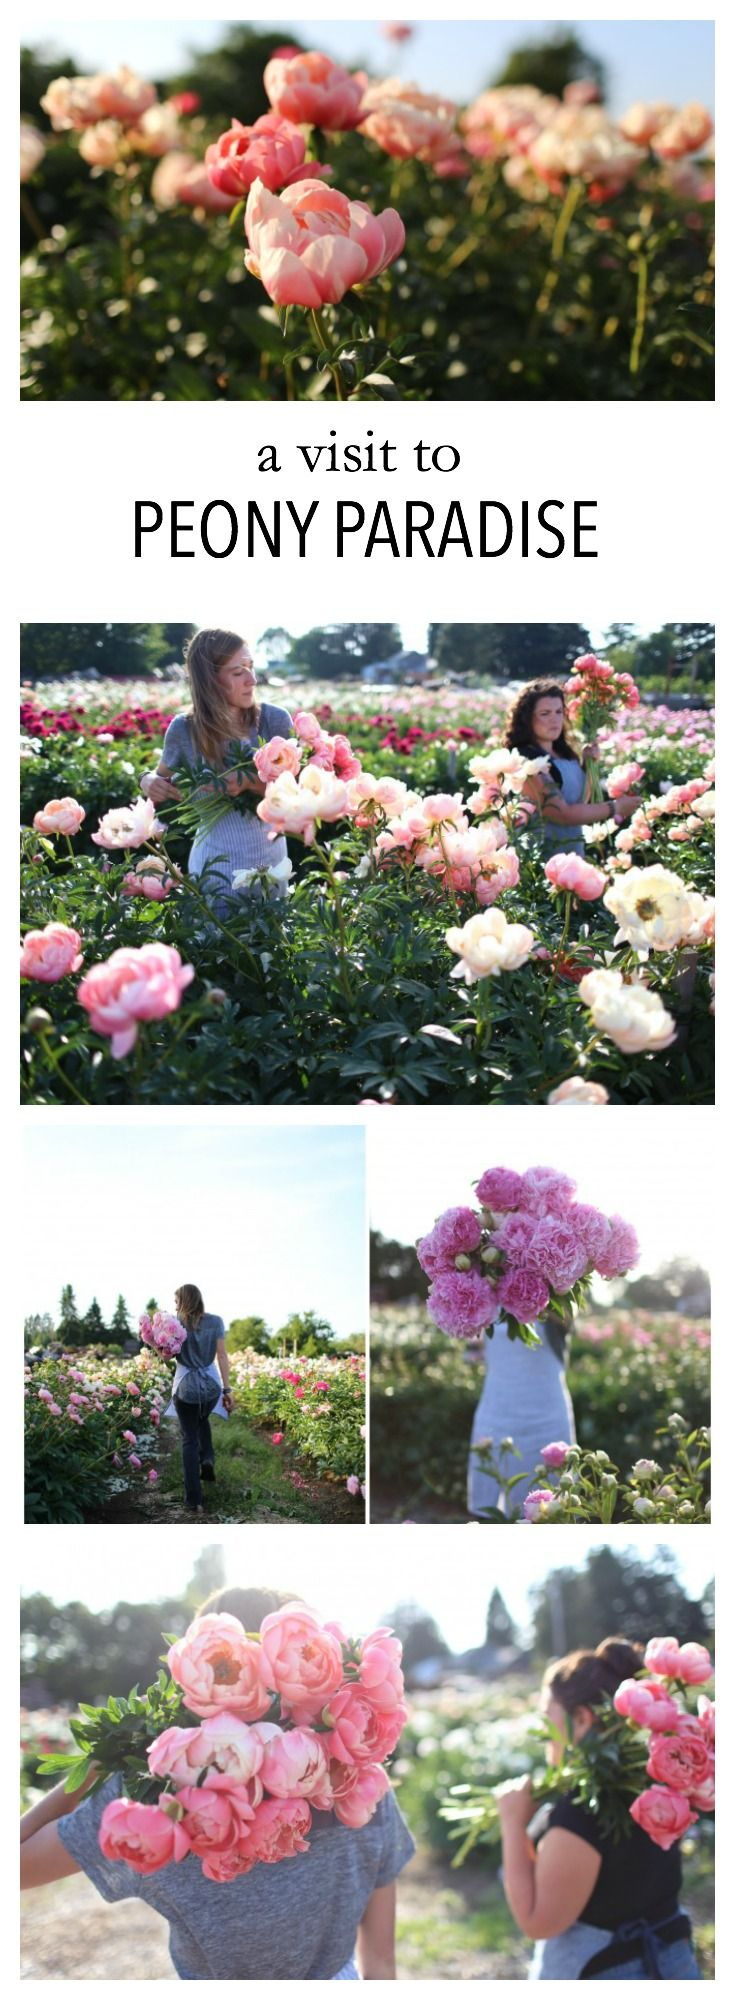 Excerpt from Floret's peony farm field trip:  We saw row after row of fully blown peonies, sparkling in the late day sun. Getting to know local growers, seeing their farms and hearing their passion for growing is a life altering experience. Years and years of hard work, love and dedication all in full bloom before your eyes. You'll never see flowers the same way again. #farmerflorist